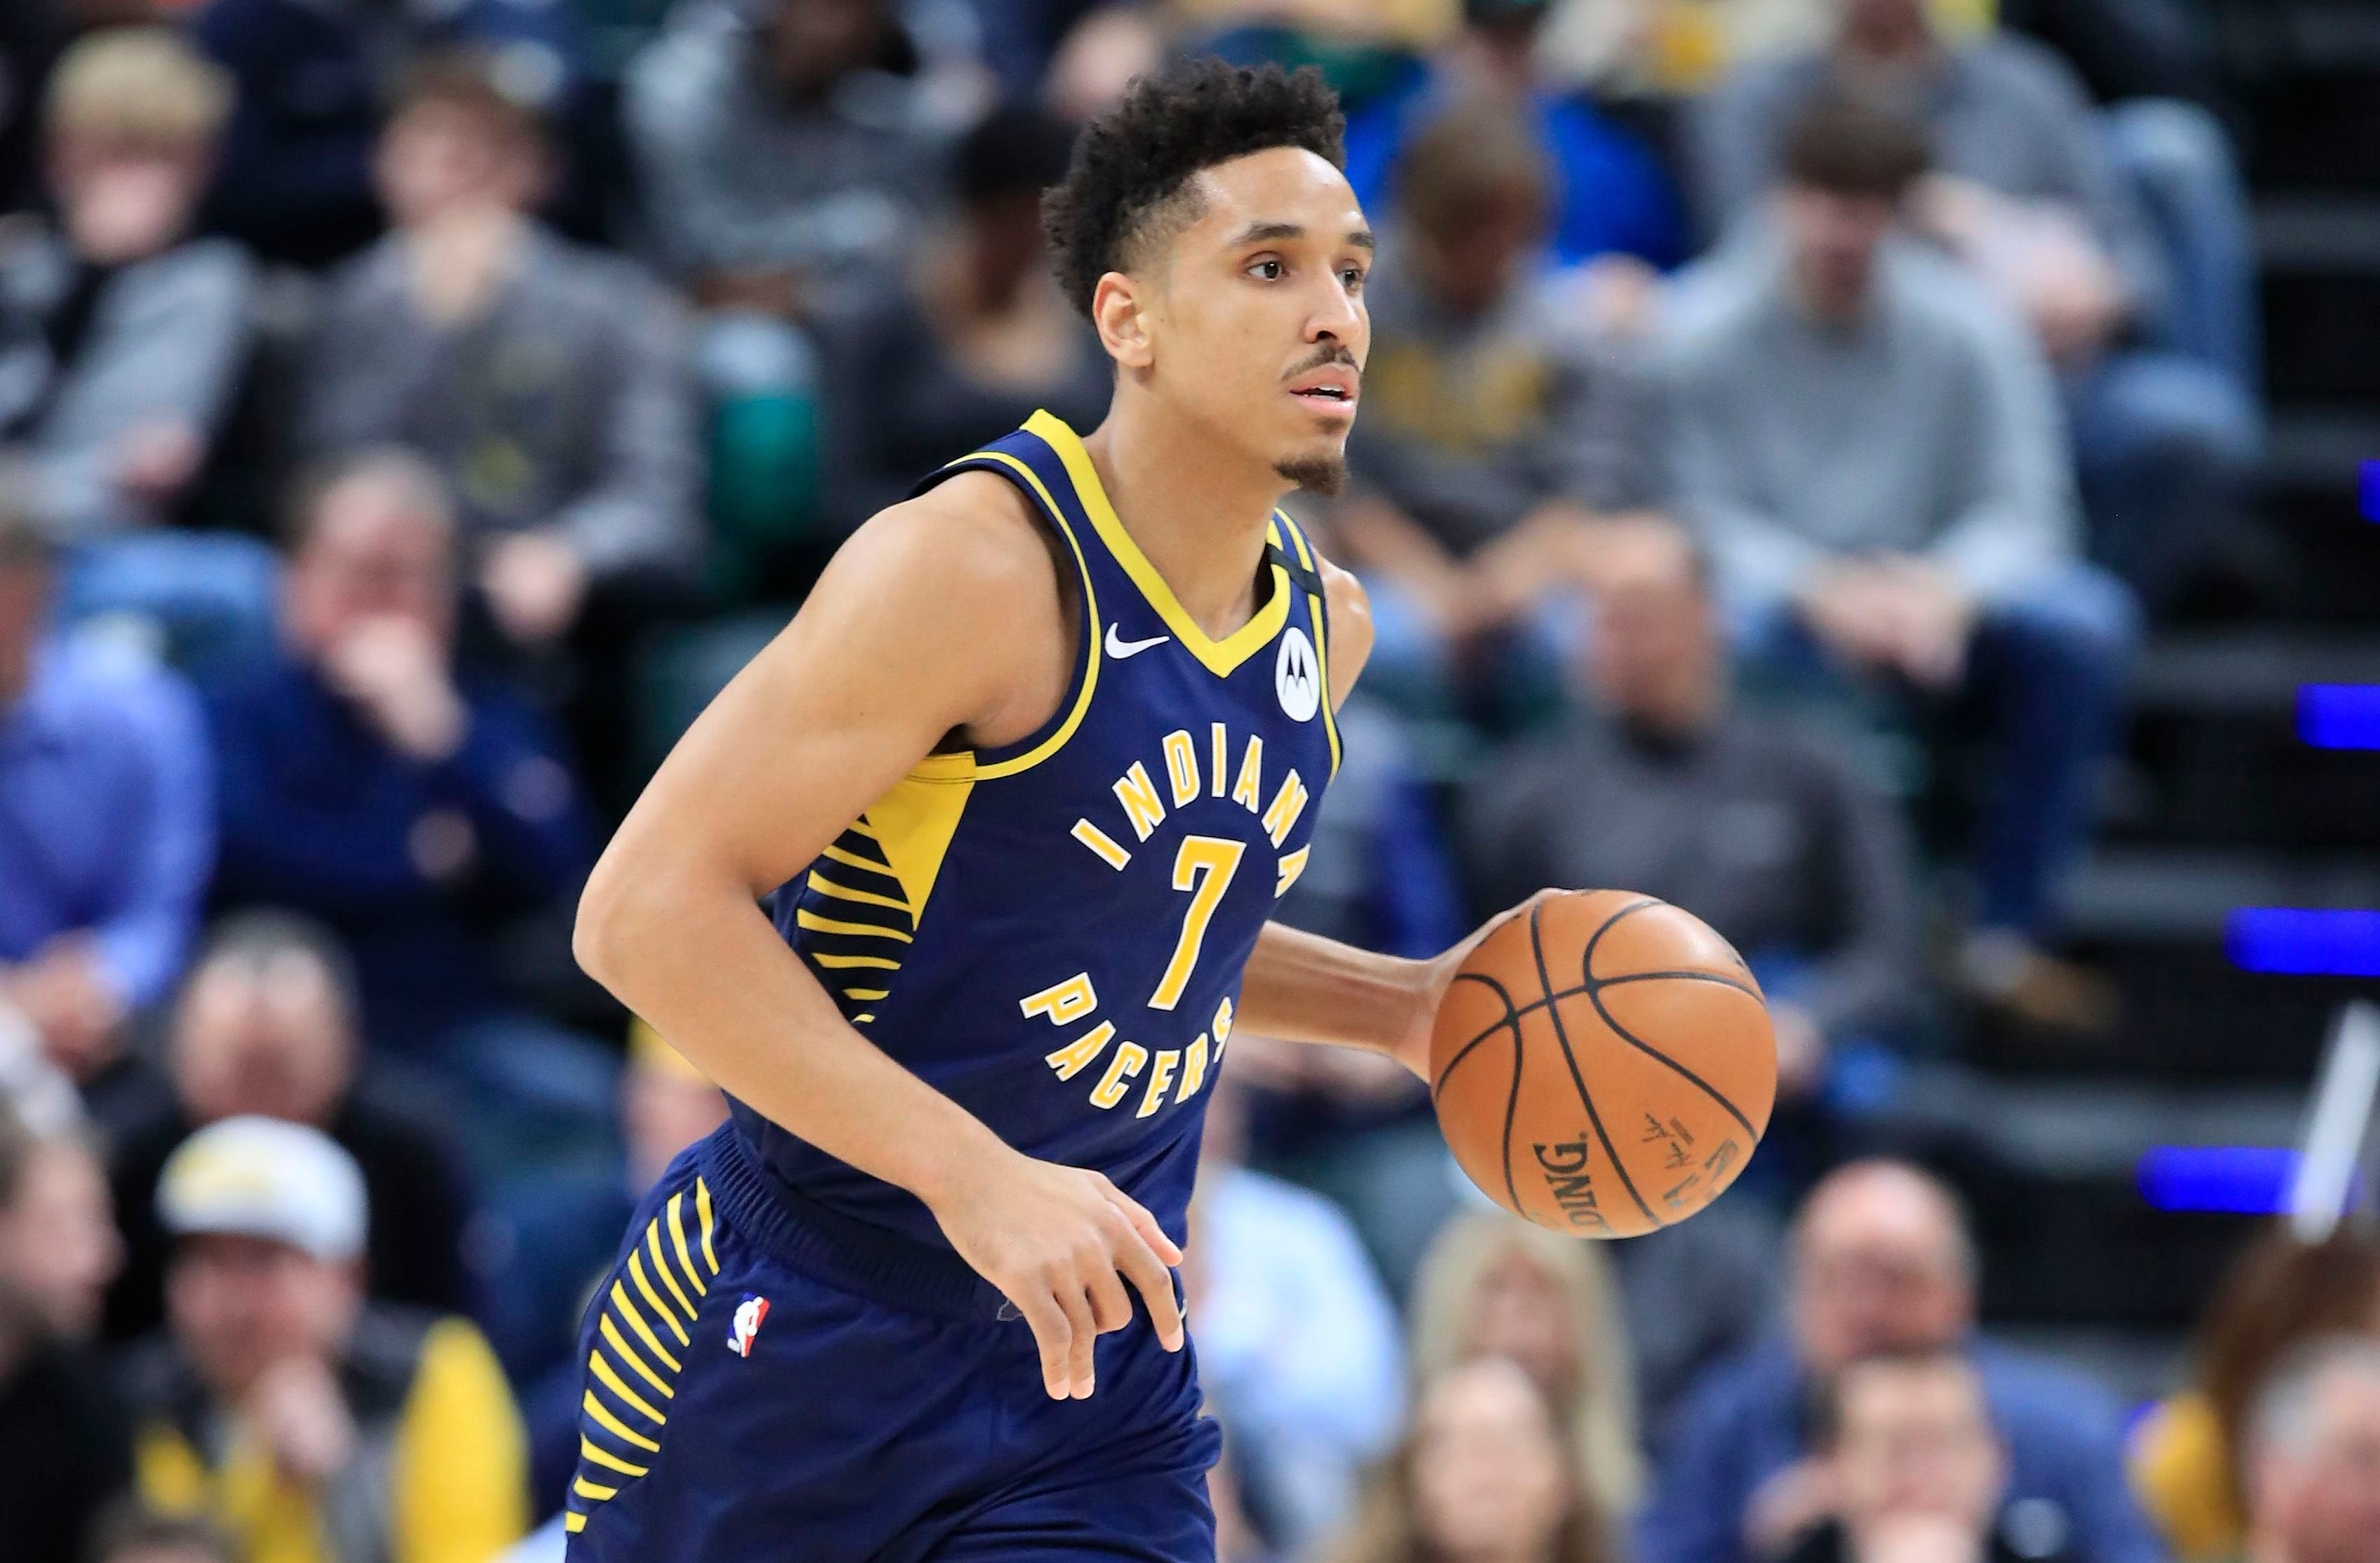 Malcolm Brogdon making plays for the Pacers